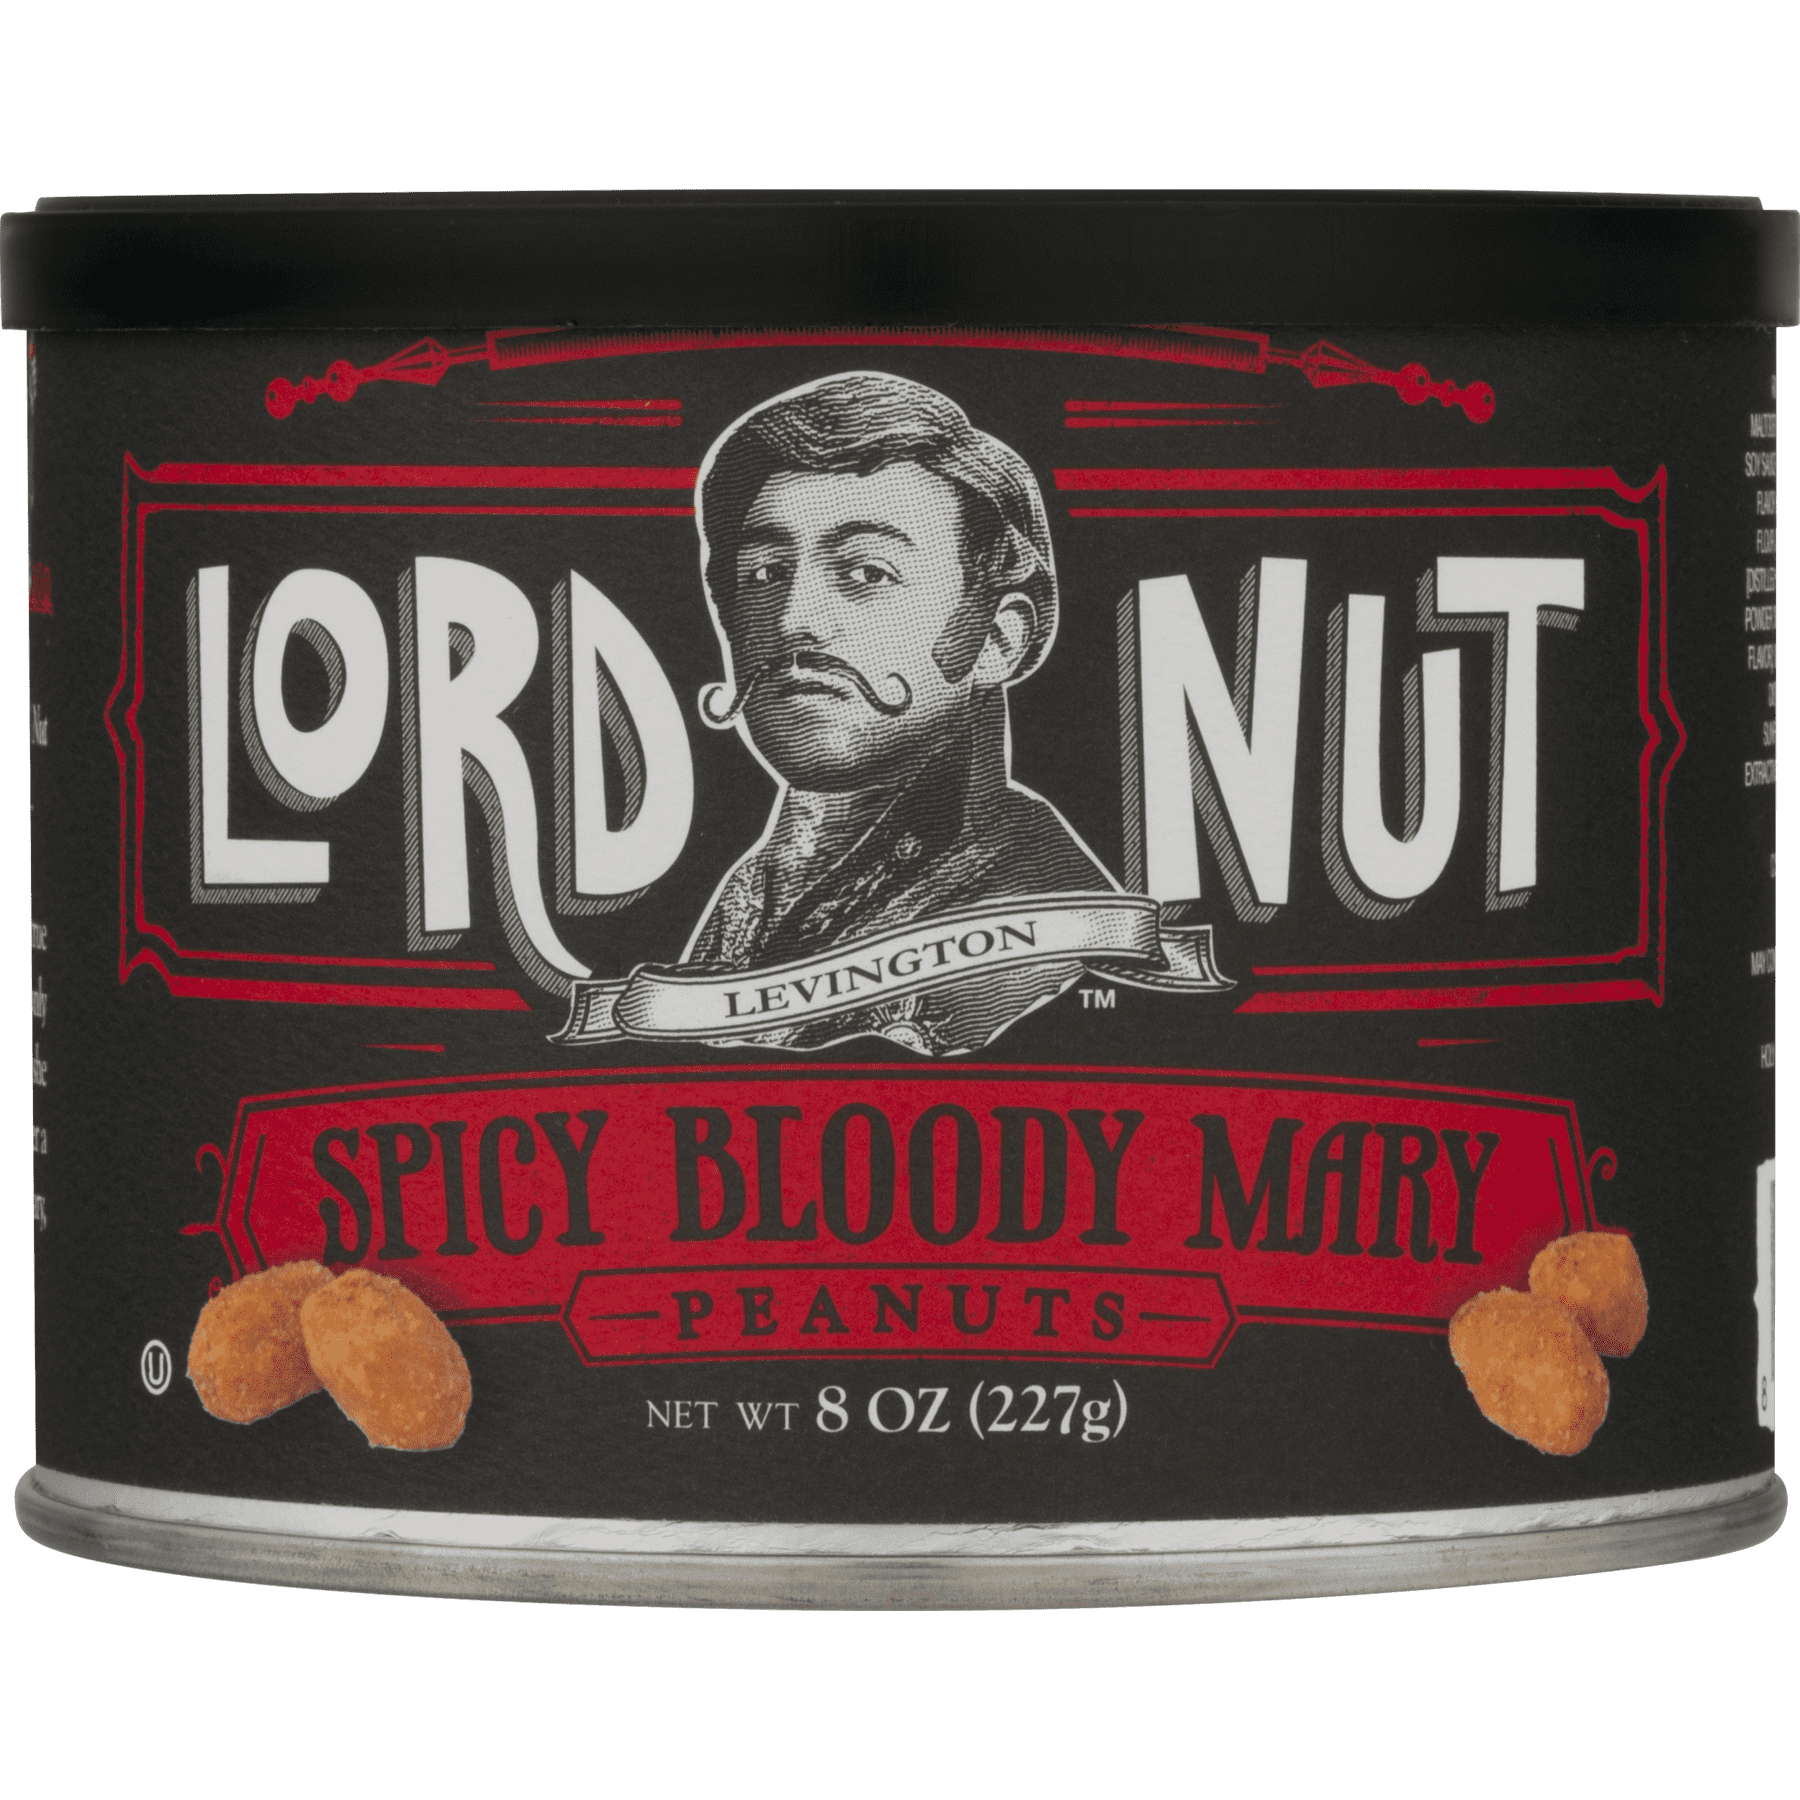 Lord Nut Levington Peanuts, Spicy Bloody Mary, 8-Ounce (Pack of 6 ...